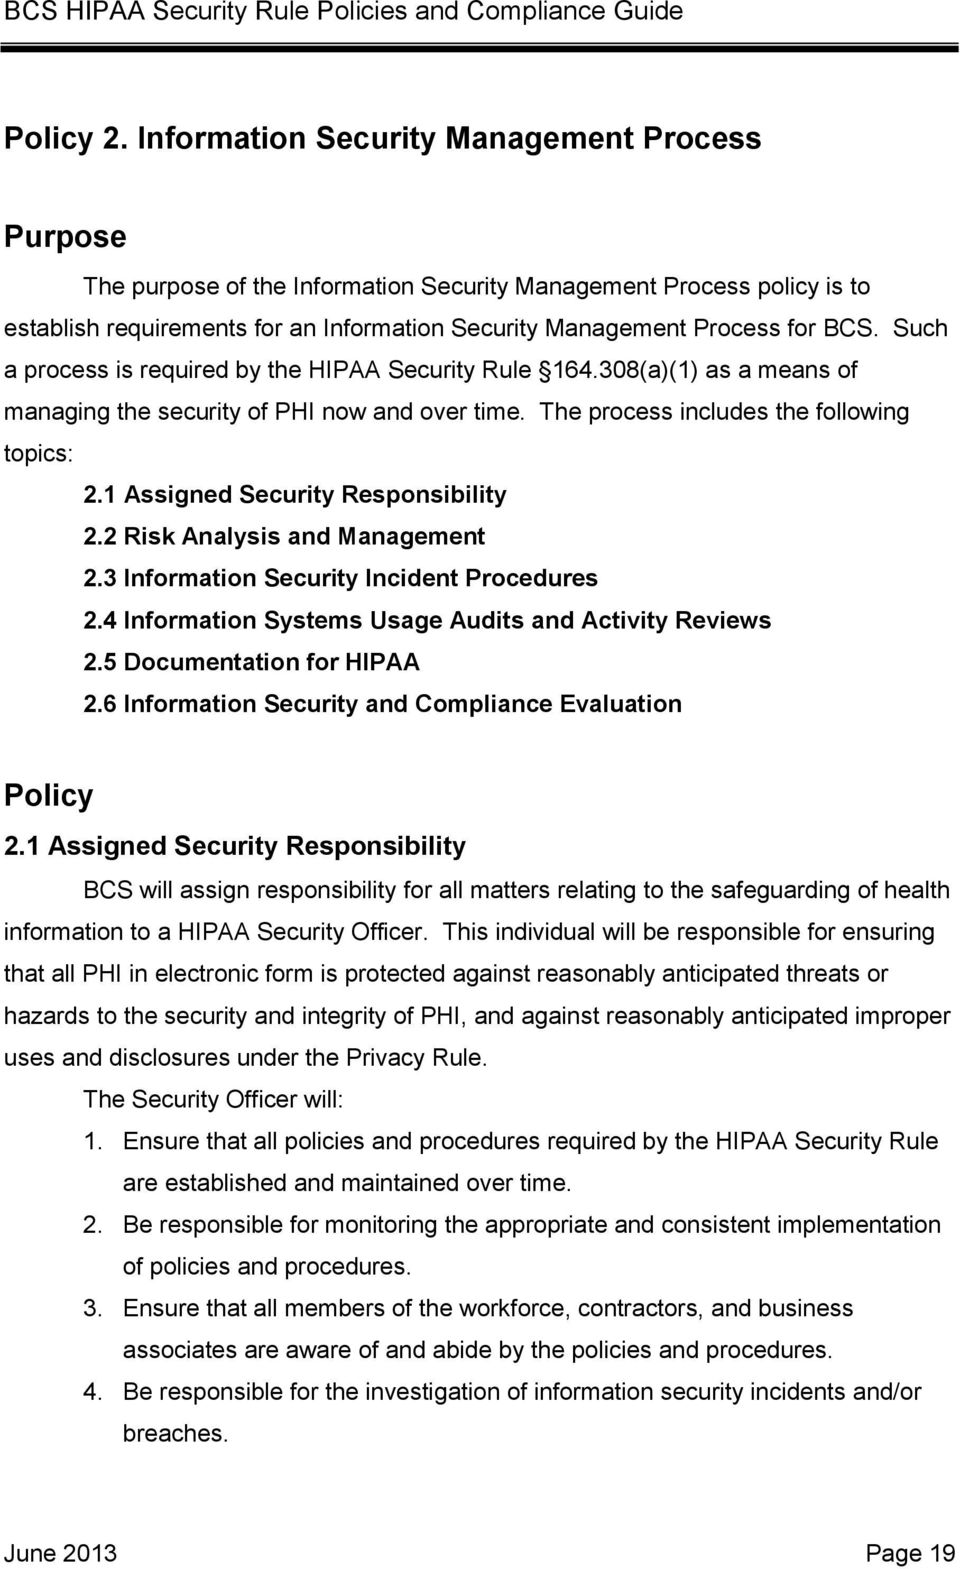 Such a process is required by the HIPAA Security Rule 164.308(a)(1) as a means of managing the security of PHI now and over time. The process includes the following topics: 2.